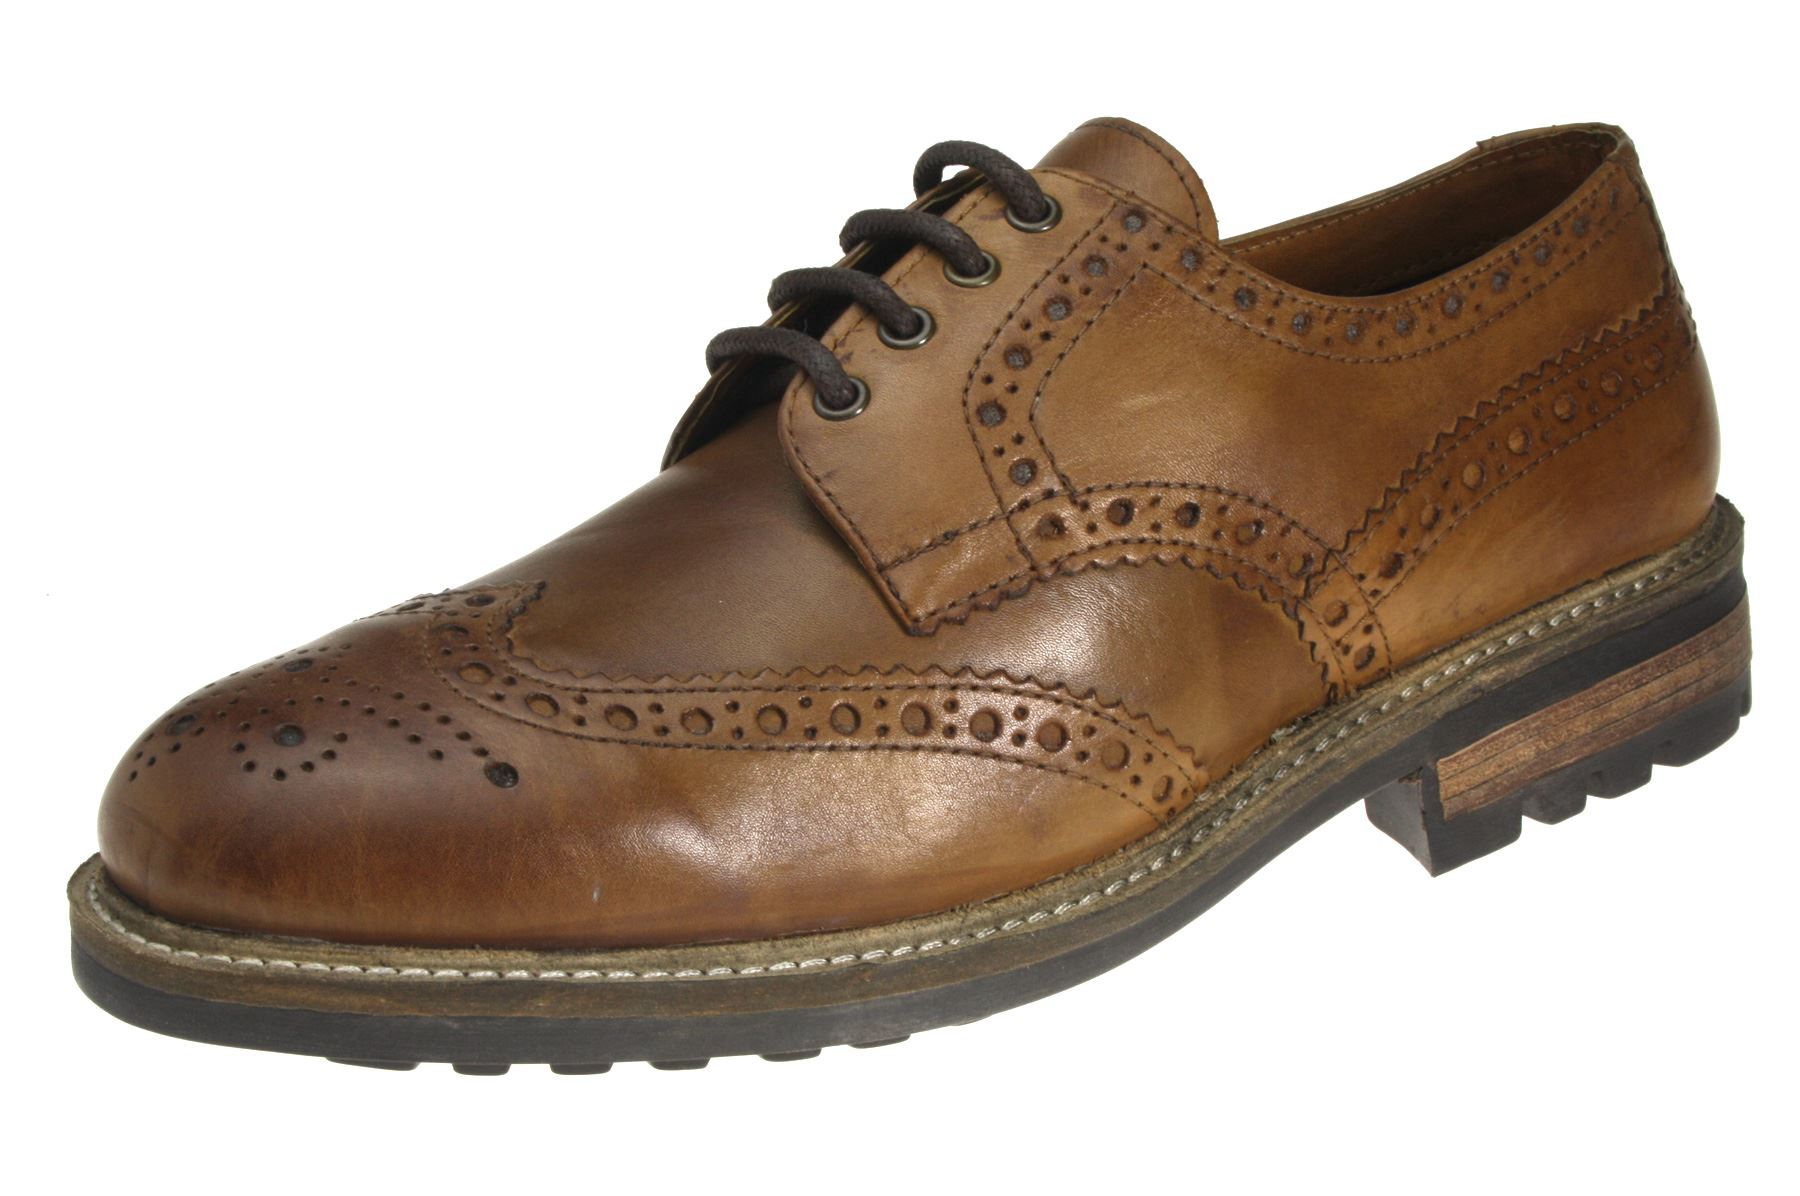 London Brogues makes Quality Designer Mens Leather Brogue Shoes and Boots in Vibrant Bright Colours with Dapper Design. The Range includes Chelsea Boots Derby Shoes Oxford Brogue .